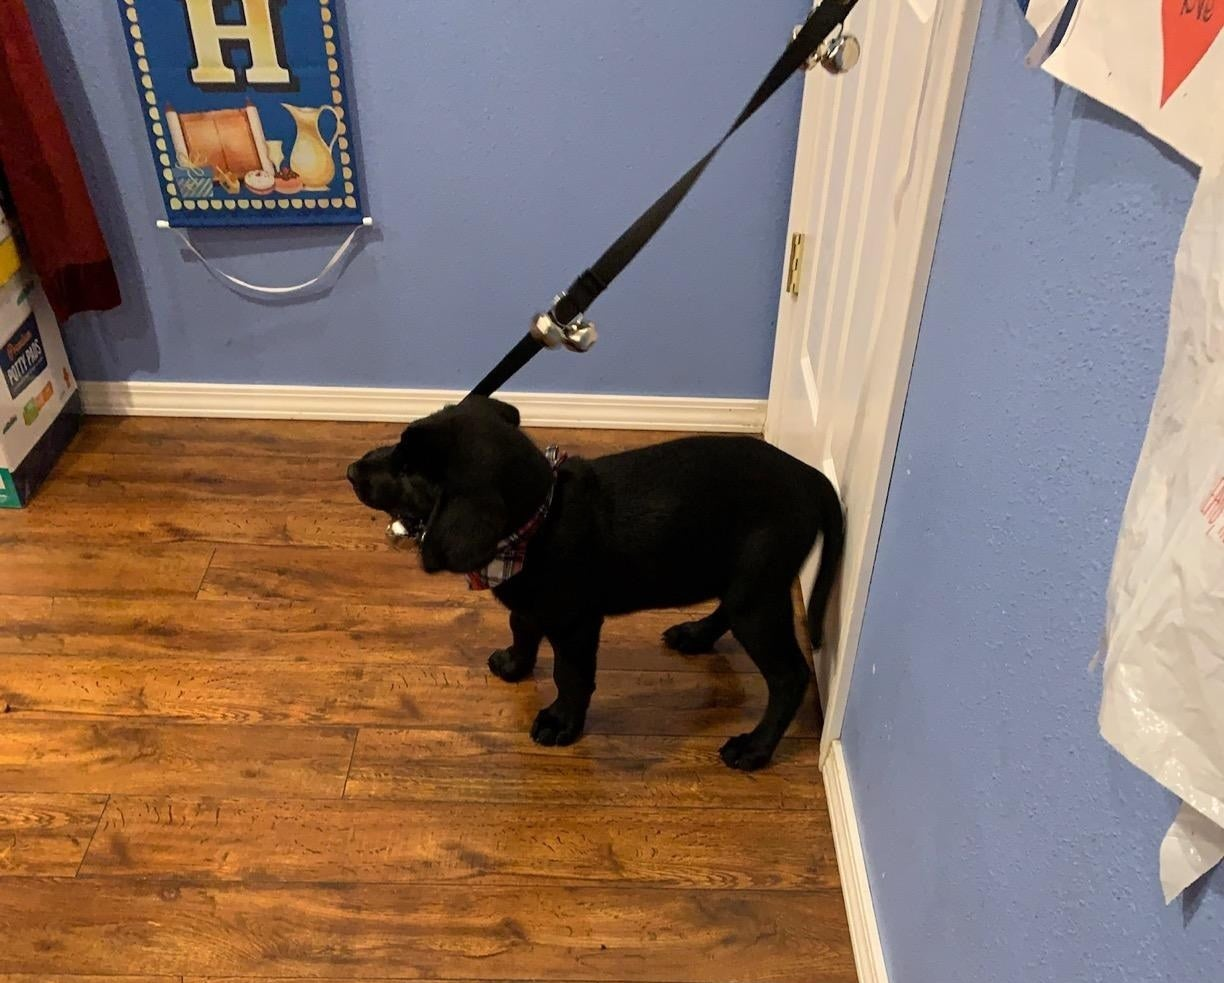 A puppy tugging on the rope hanging from a doorknob